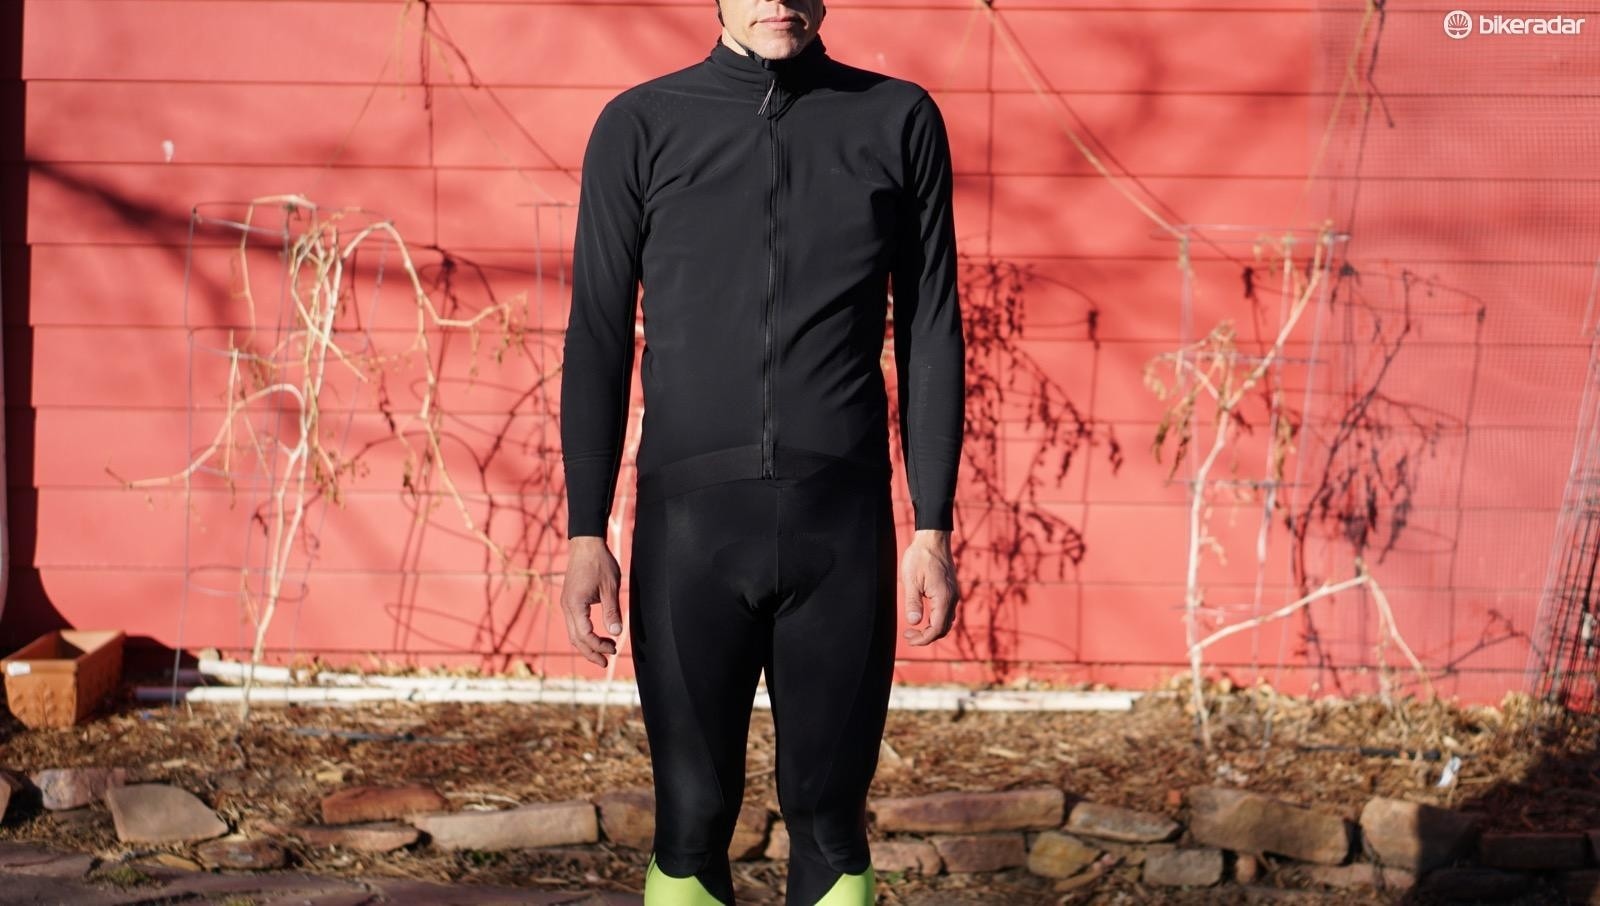 The Windresistant Jersey functions similarly to a stretchy GoreTex piece